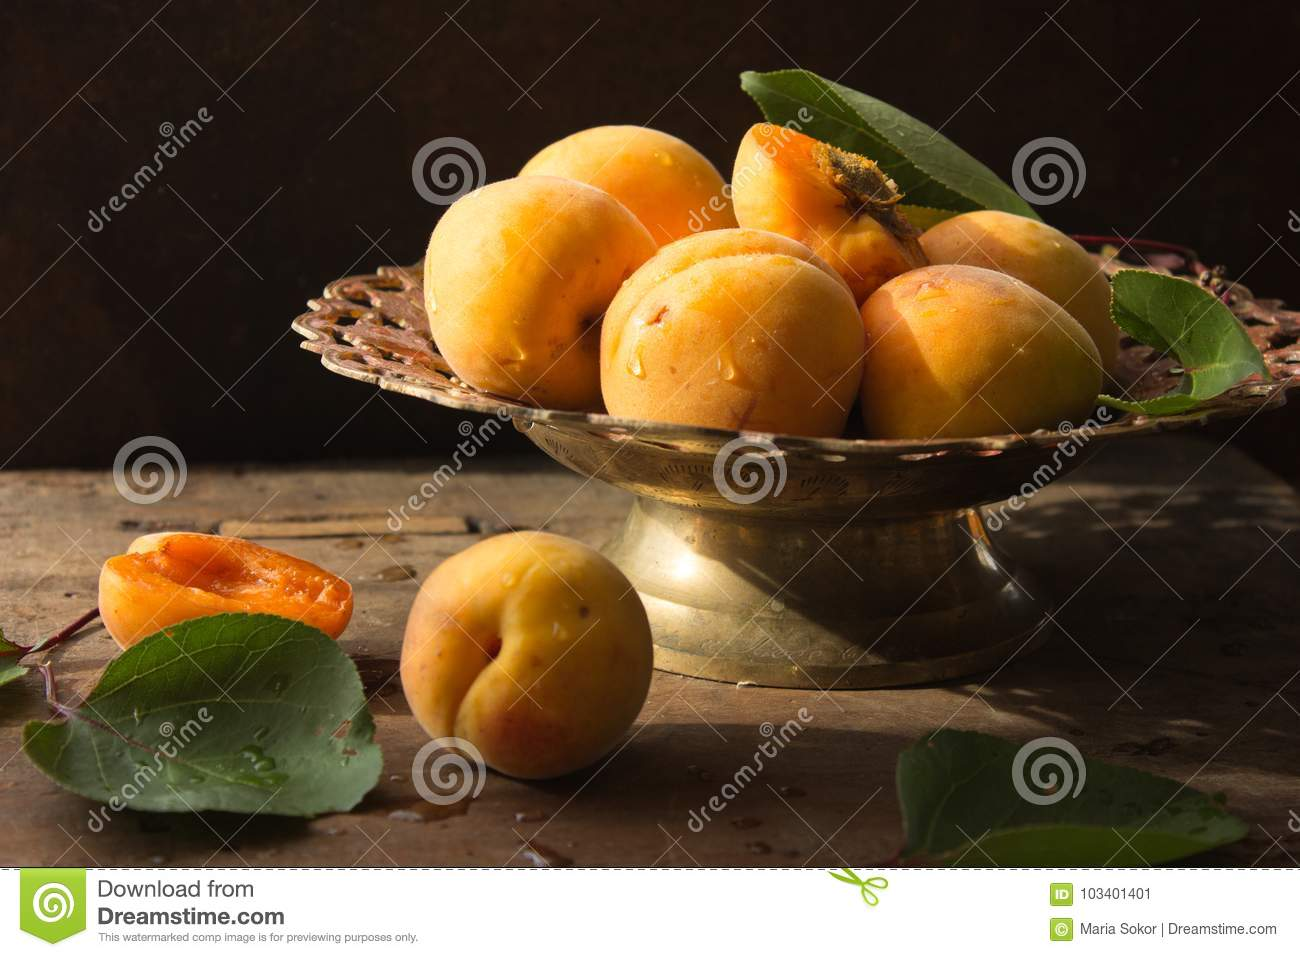 Various Fresh ripe apricots on wooden surface leaves fruits apricots on board cut apricots in half. Light blue rustic wood backgro